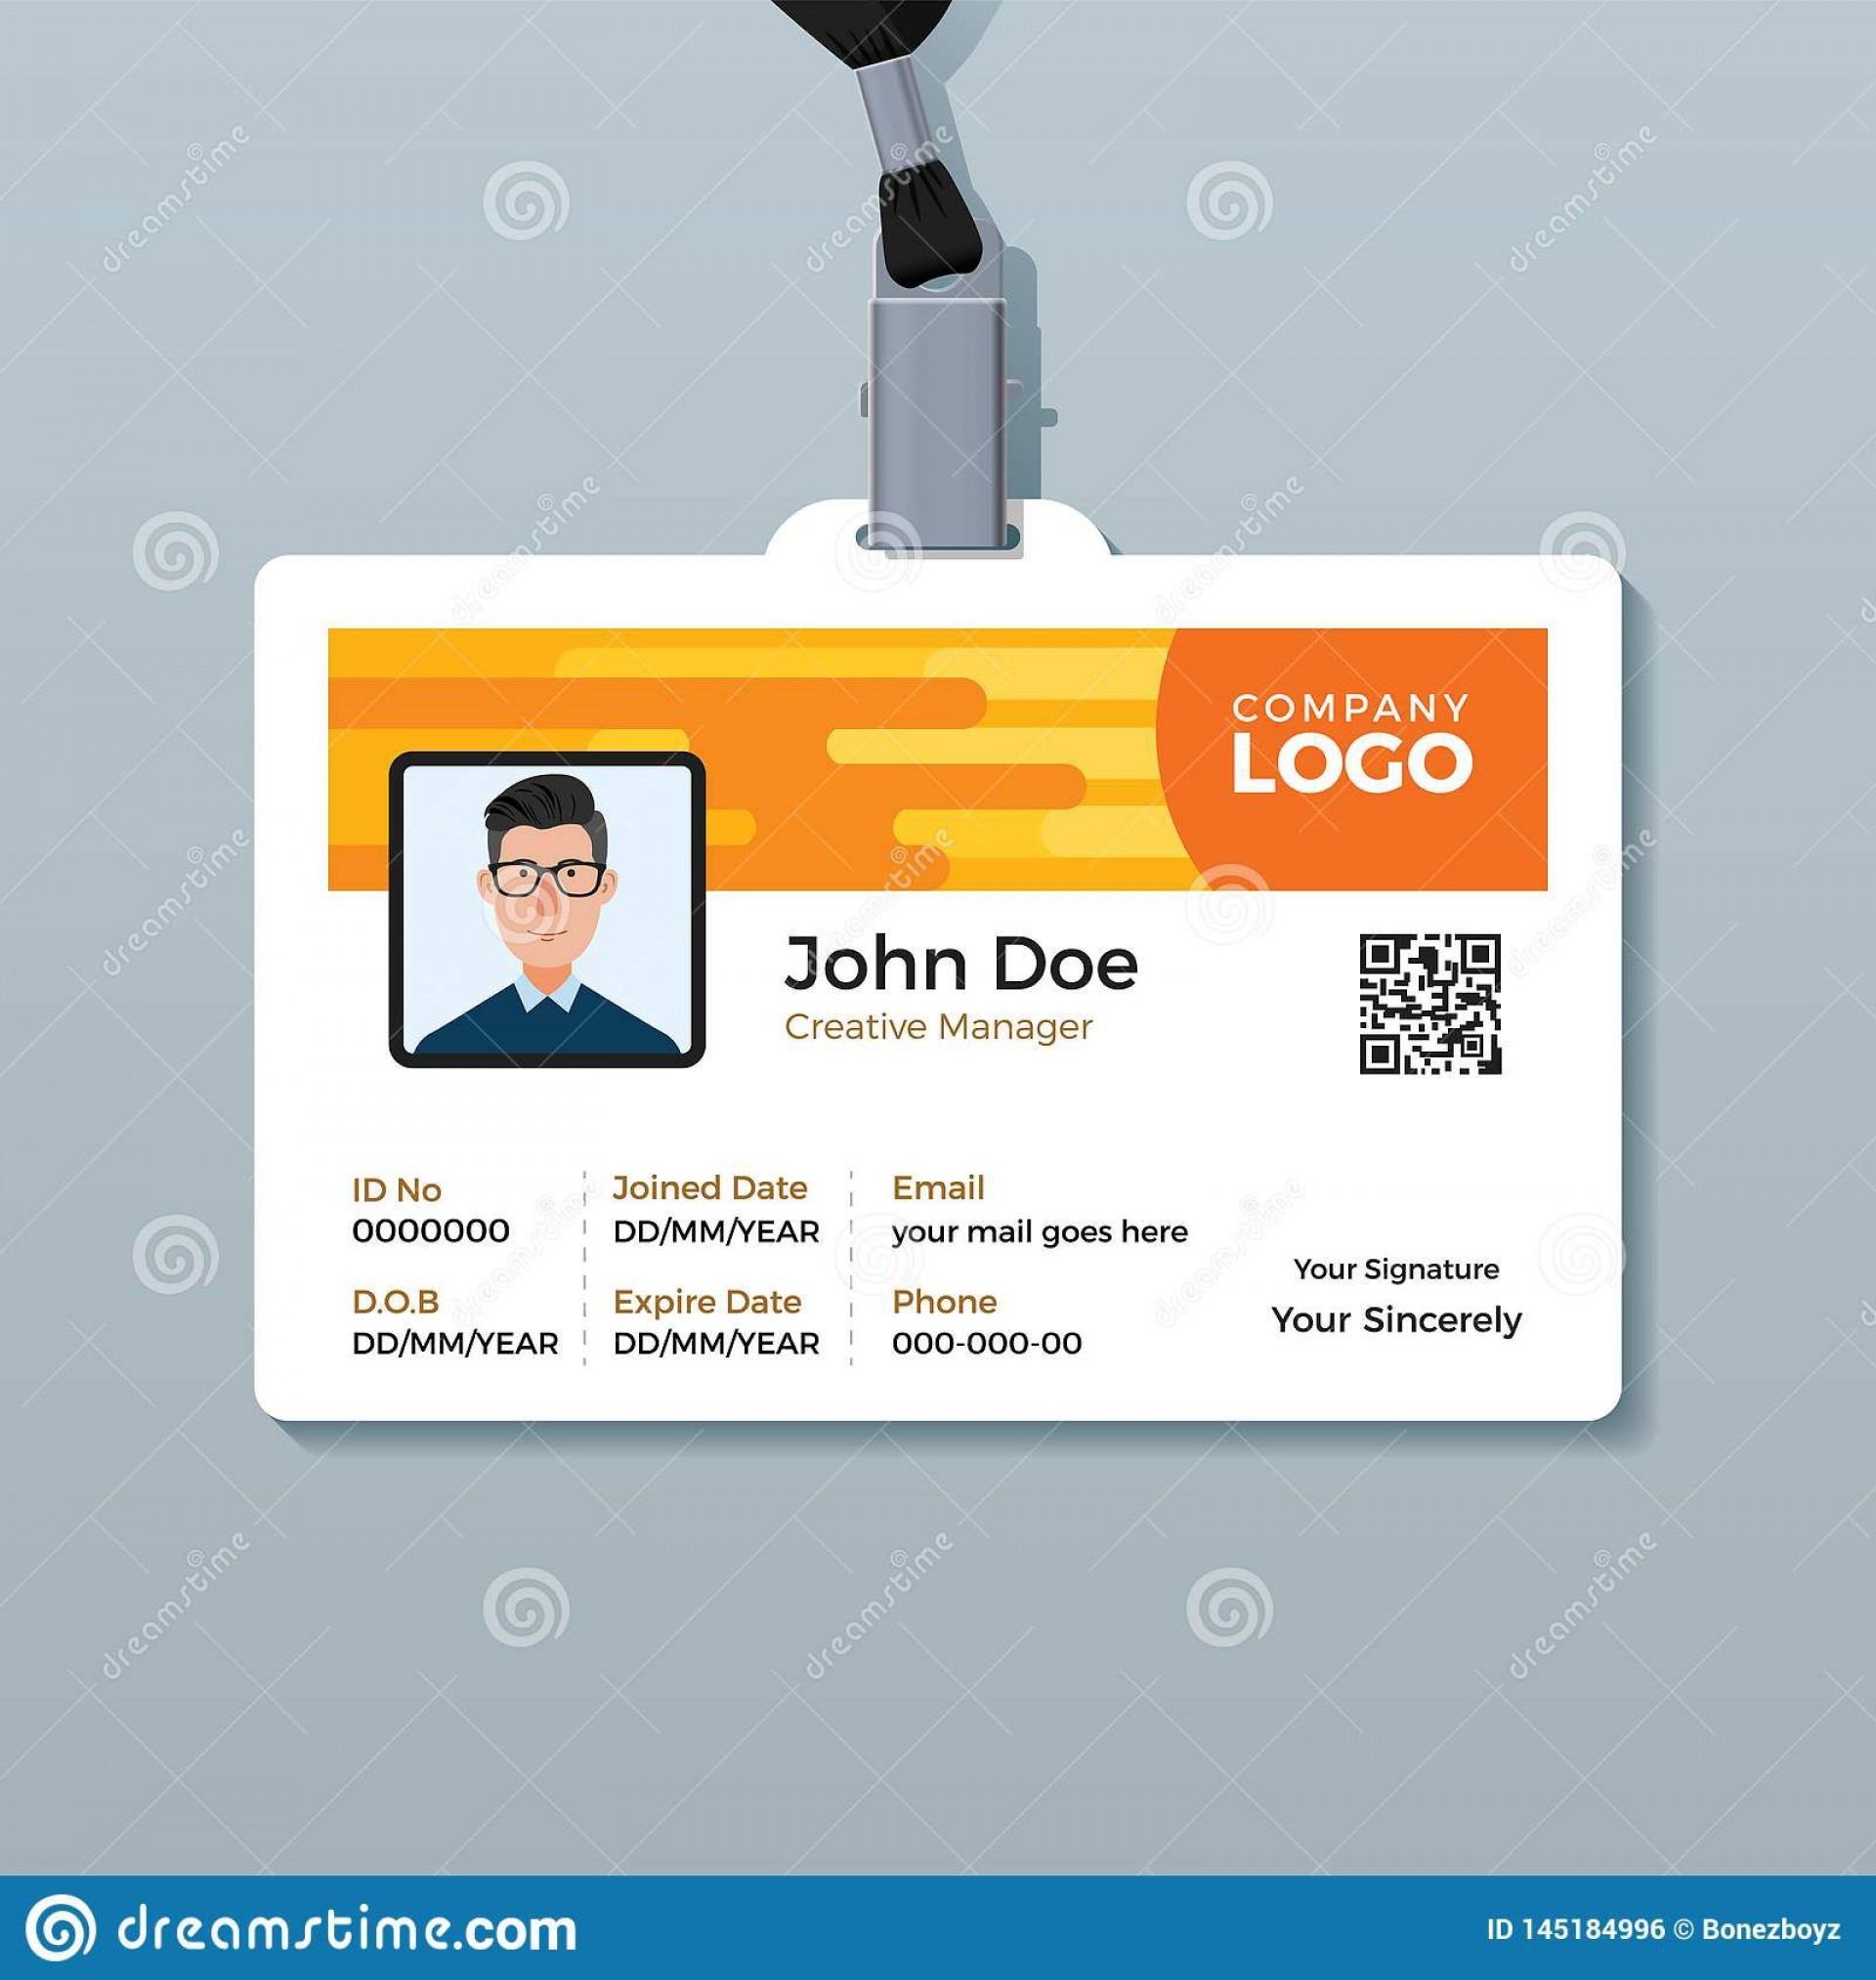 007 Simple Employee Id Card Template High Definition  Free Download Psd Word1920